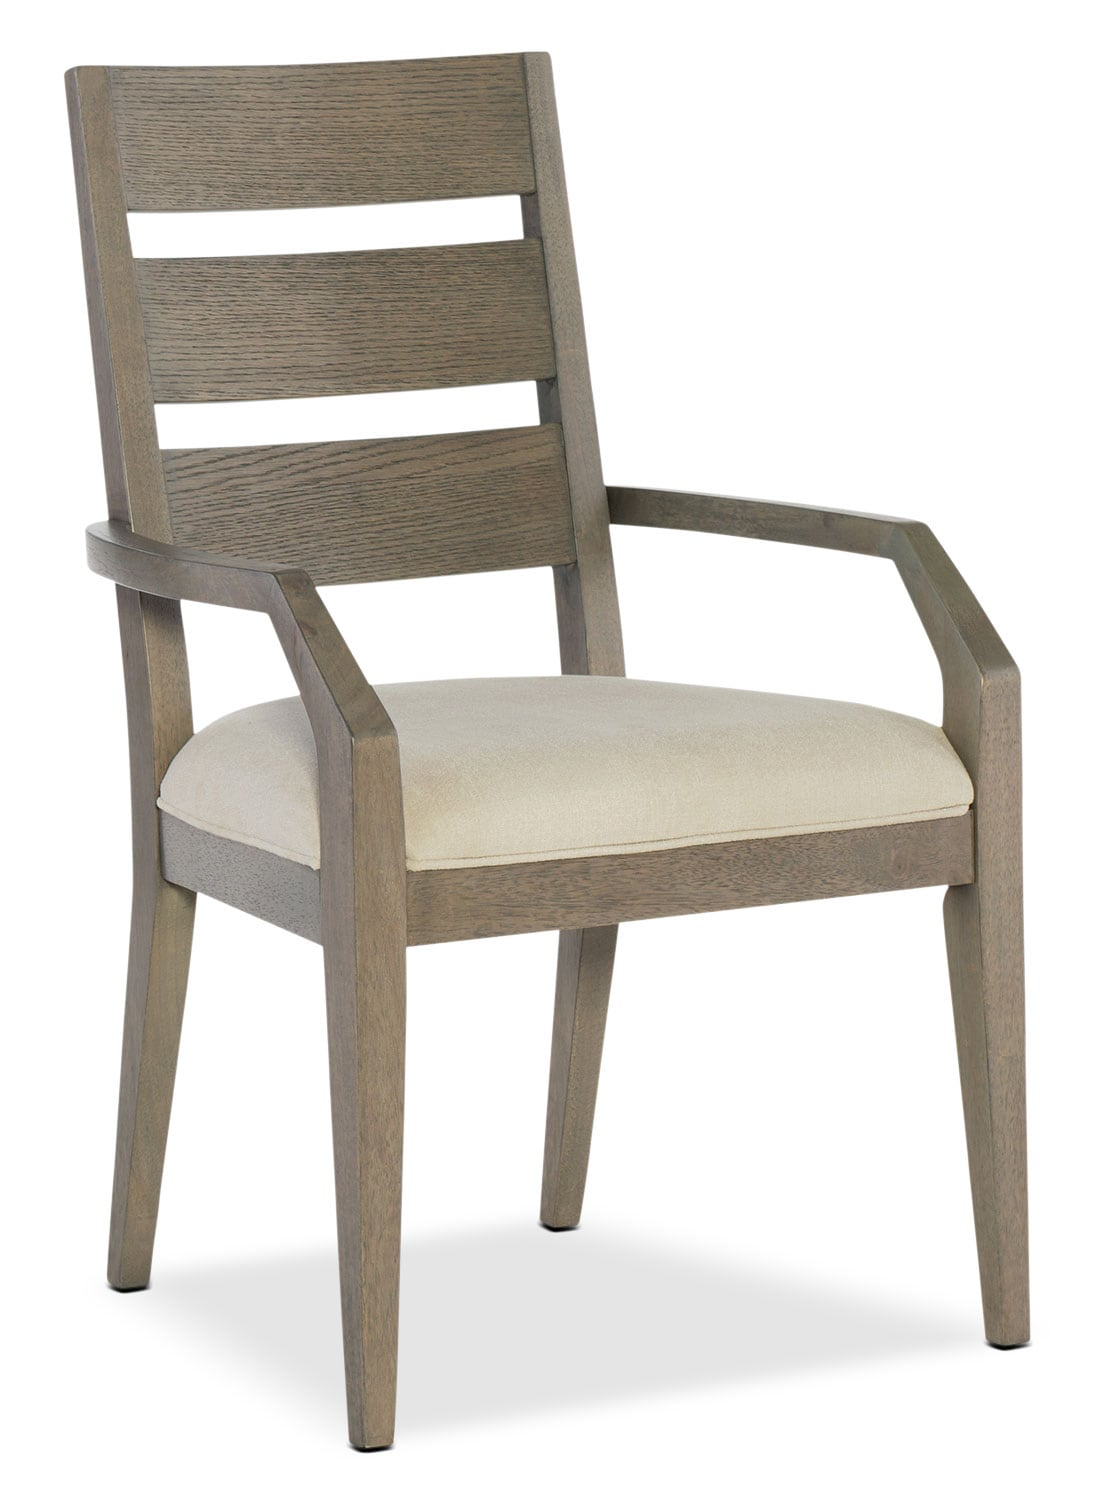 Dining Room Furniture - Rachael Ray Highline Ladder Arm Chair - Greige